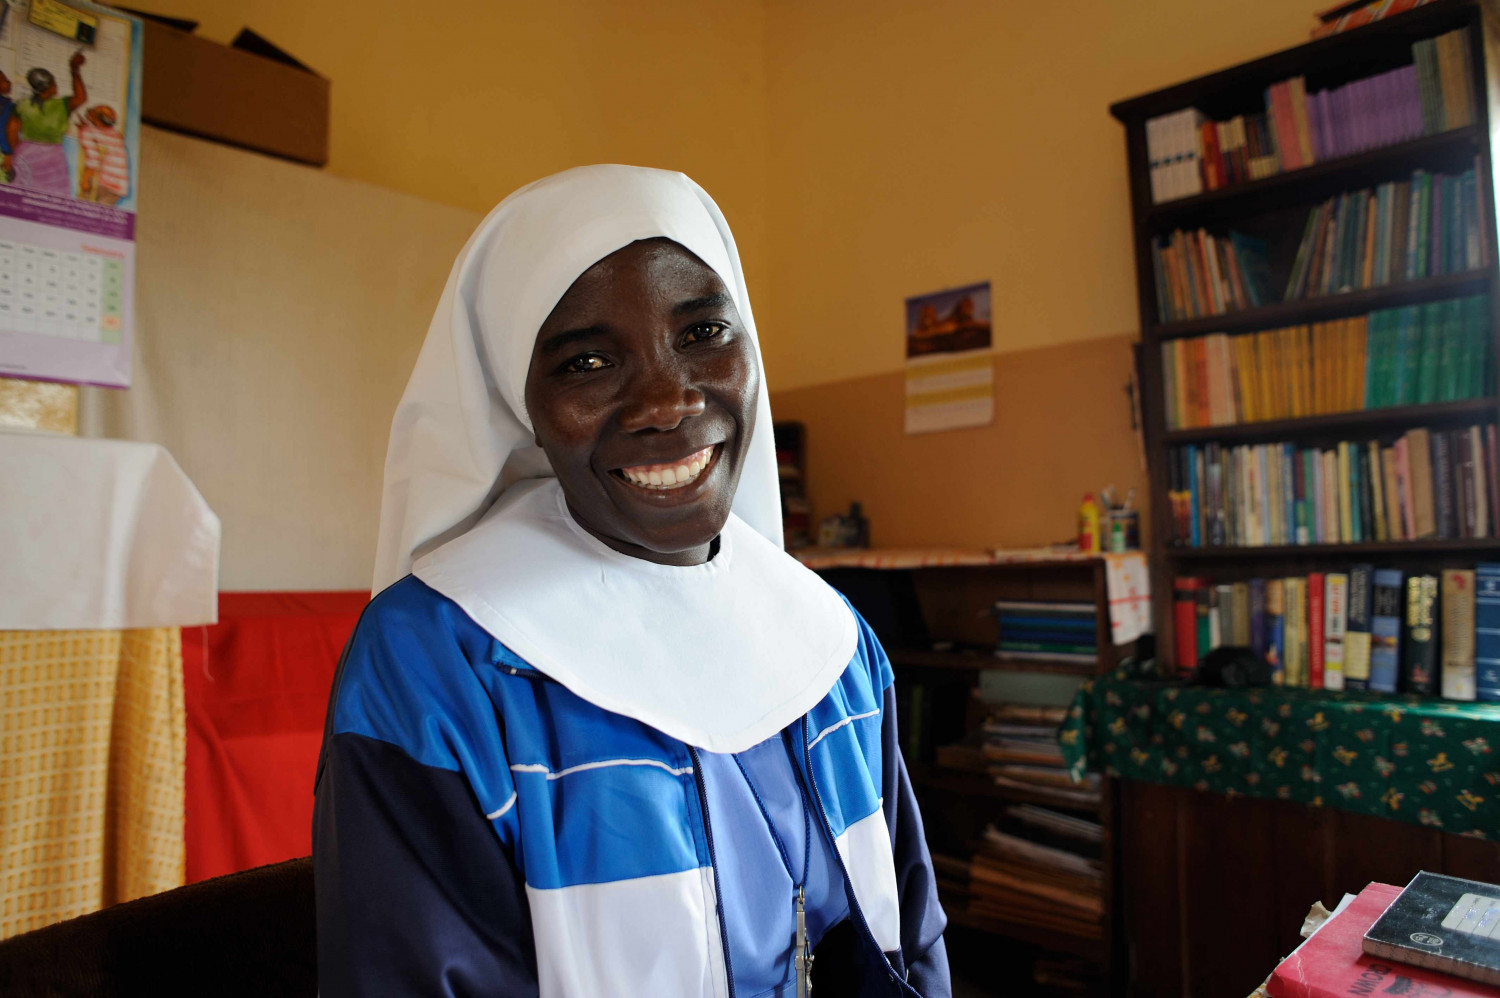 A nun in Tanzania next to a bookshelf